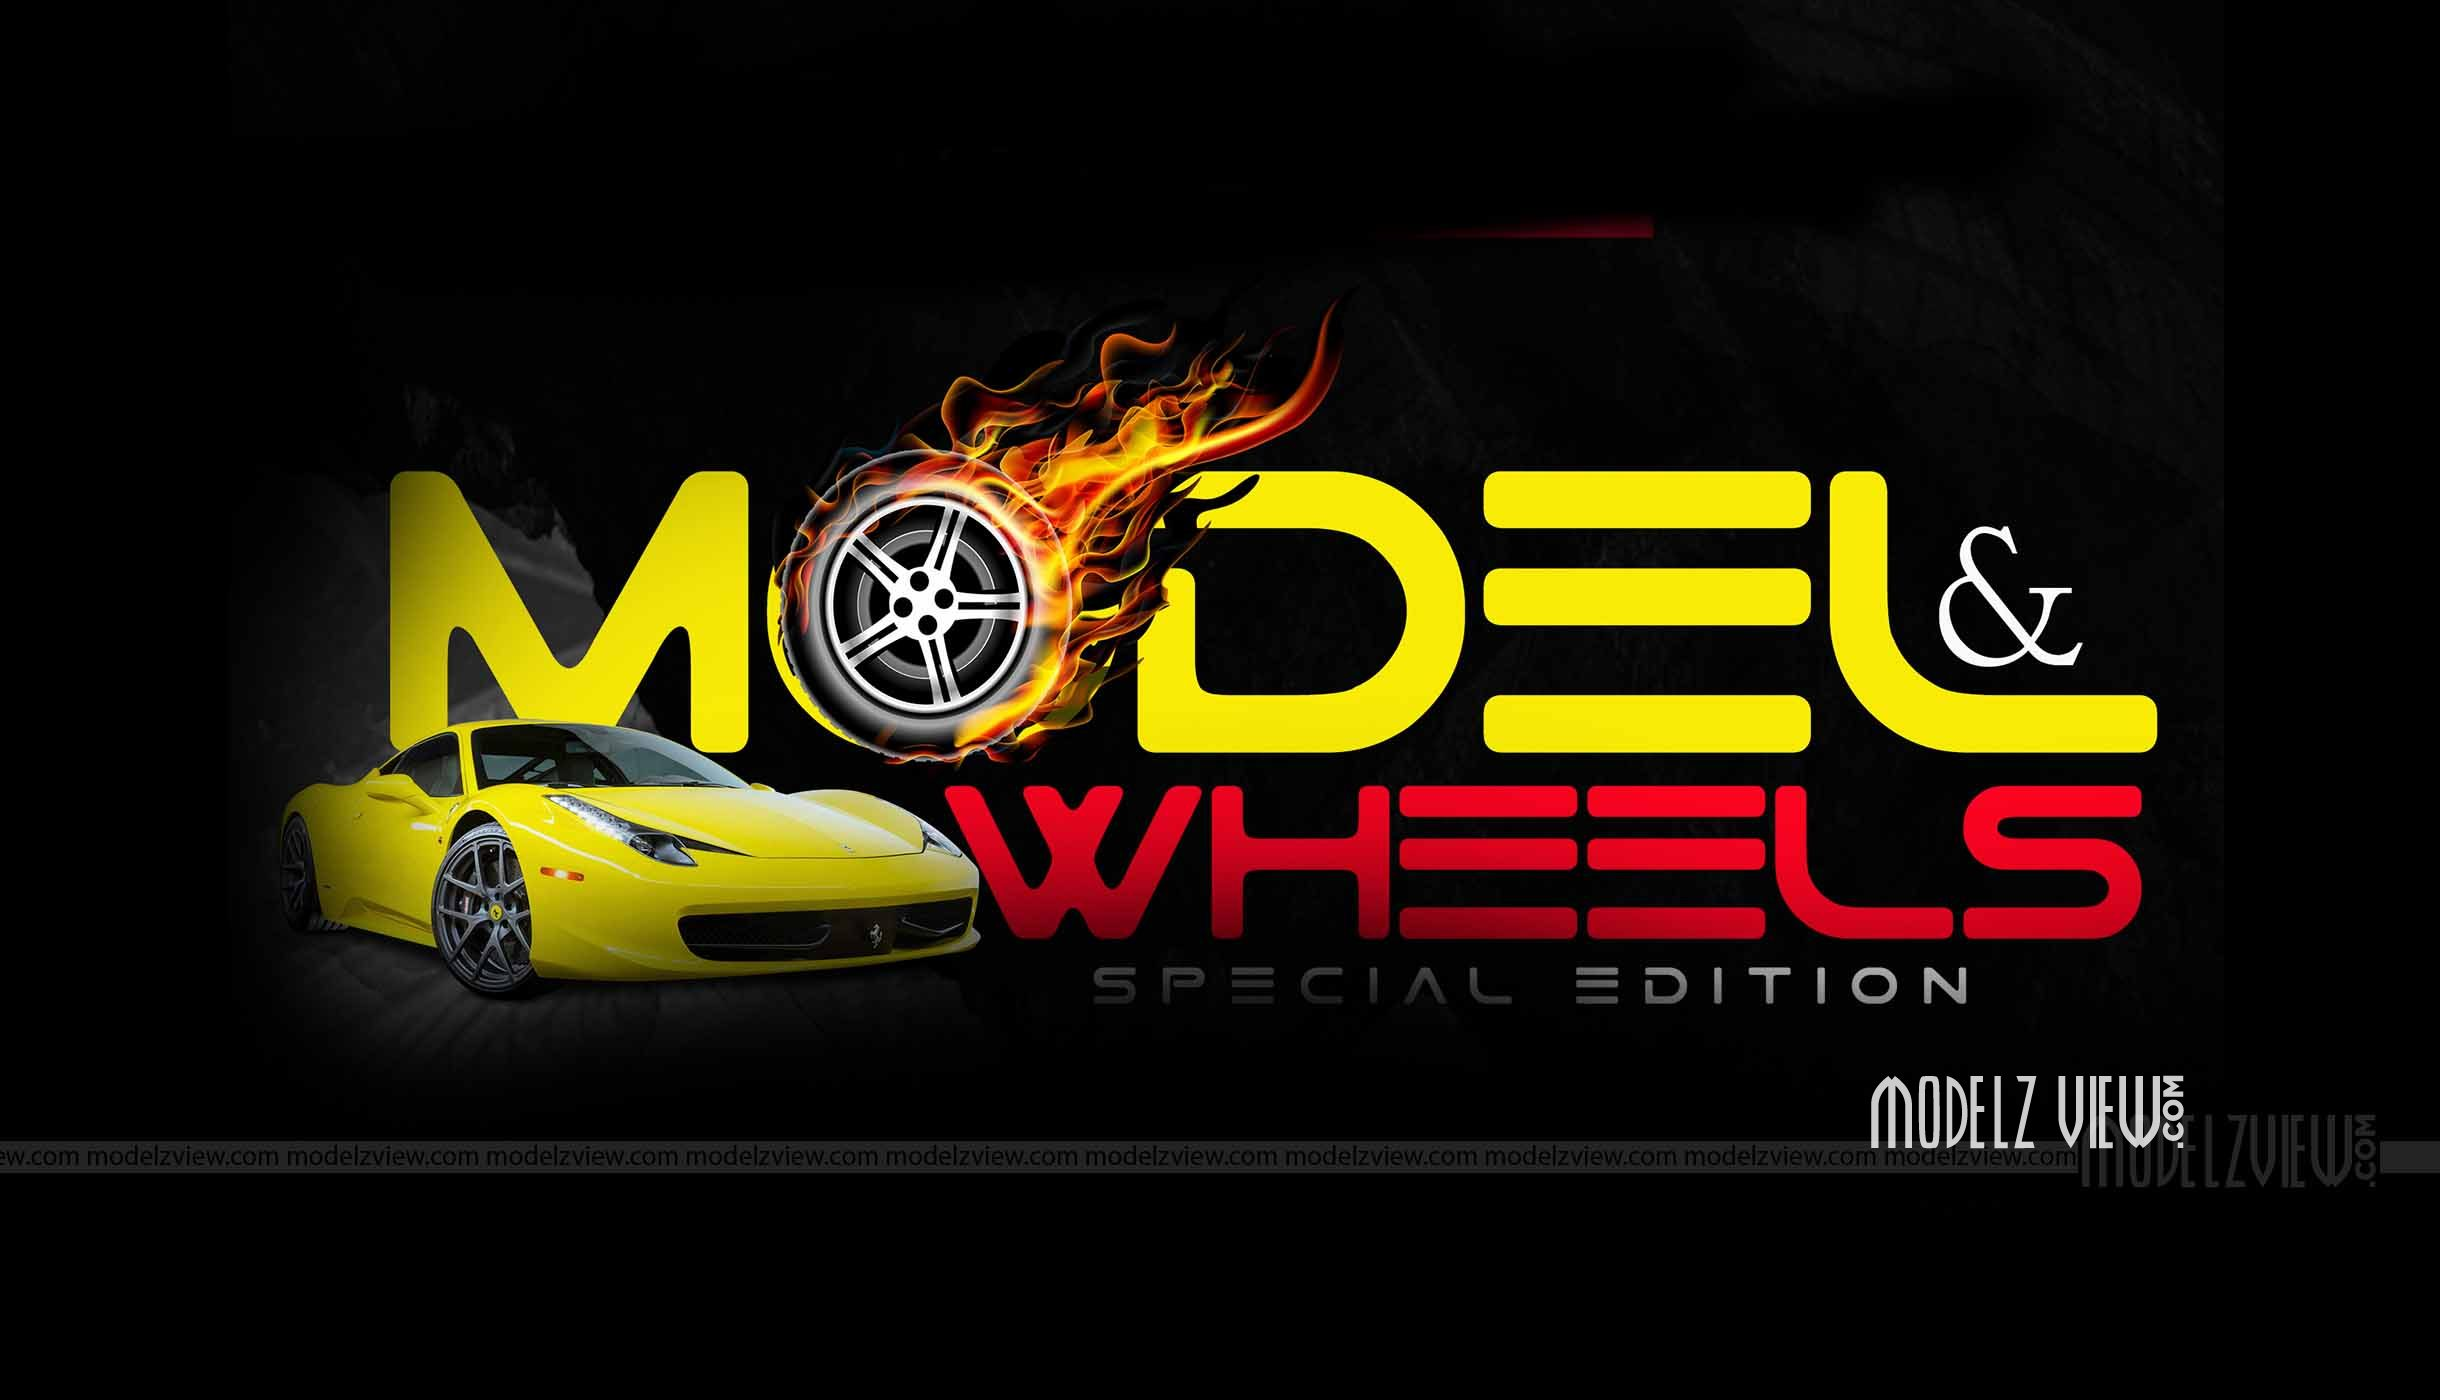 Submissions Open For Grand Models and Wheels Special Edition